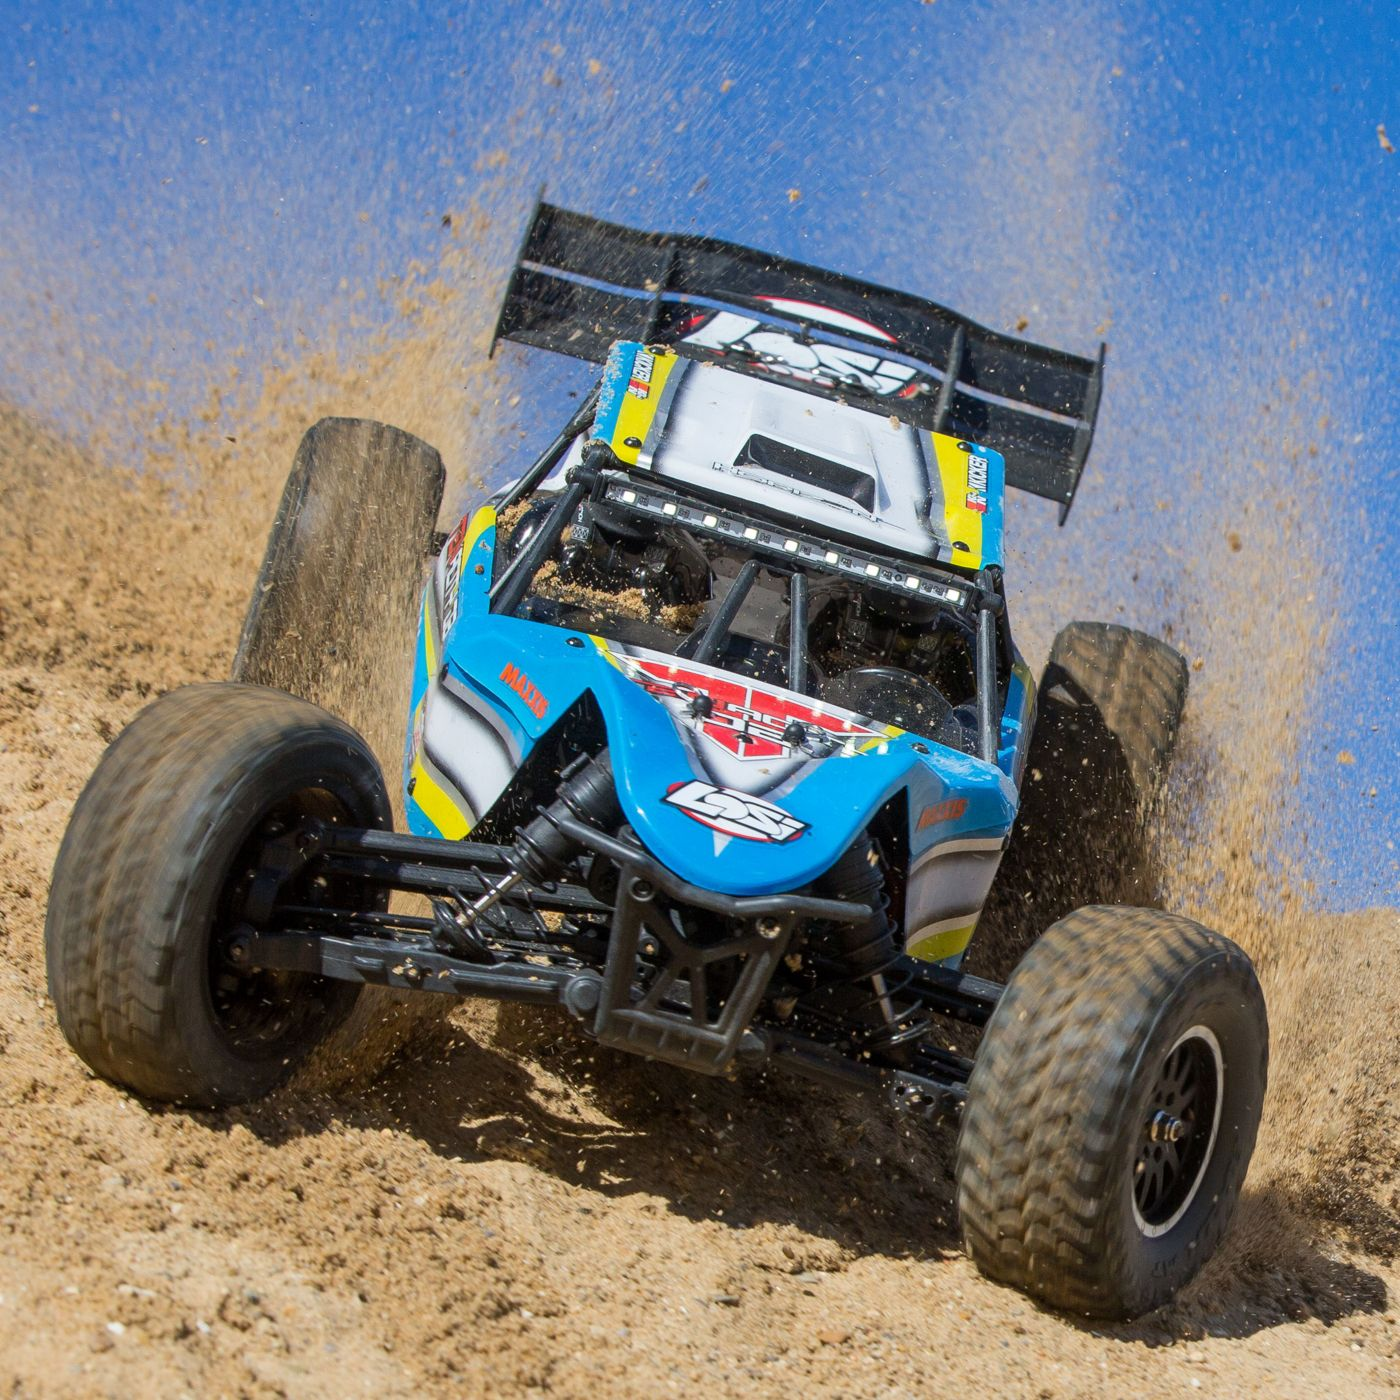 Losi Tenacity 4wd buggy rtr brushless rtr blue 10